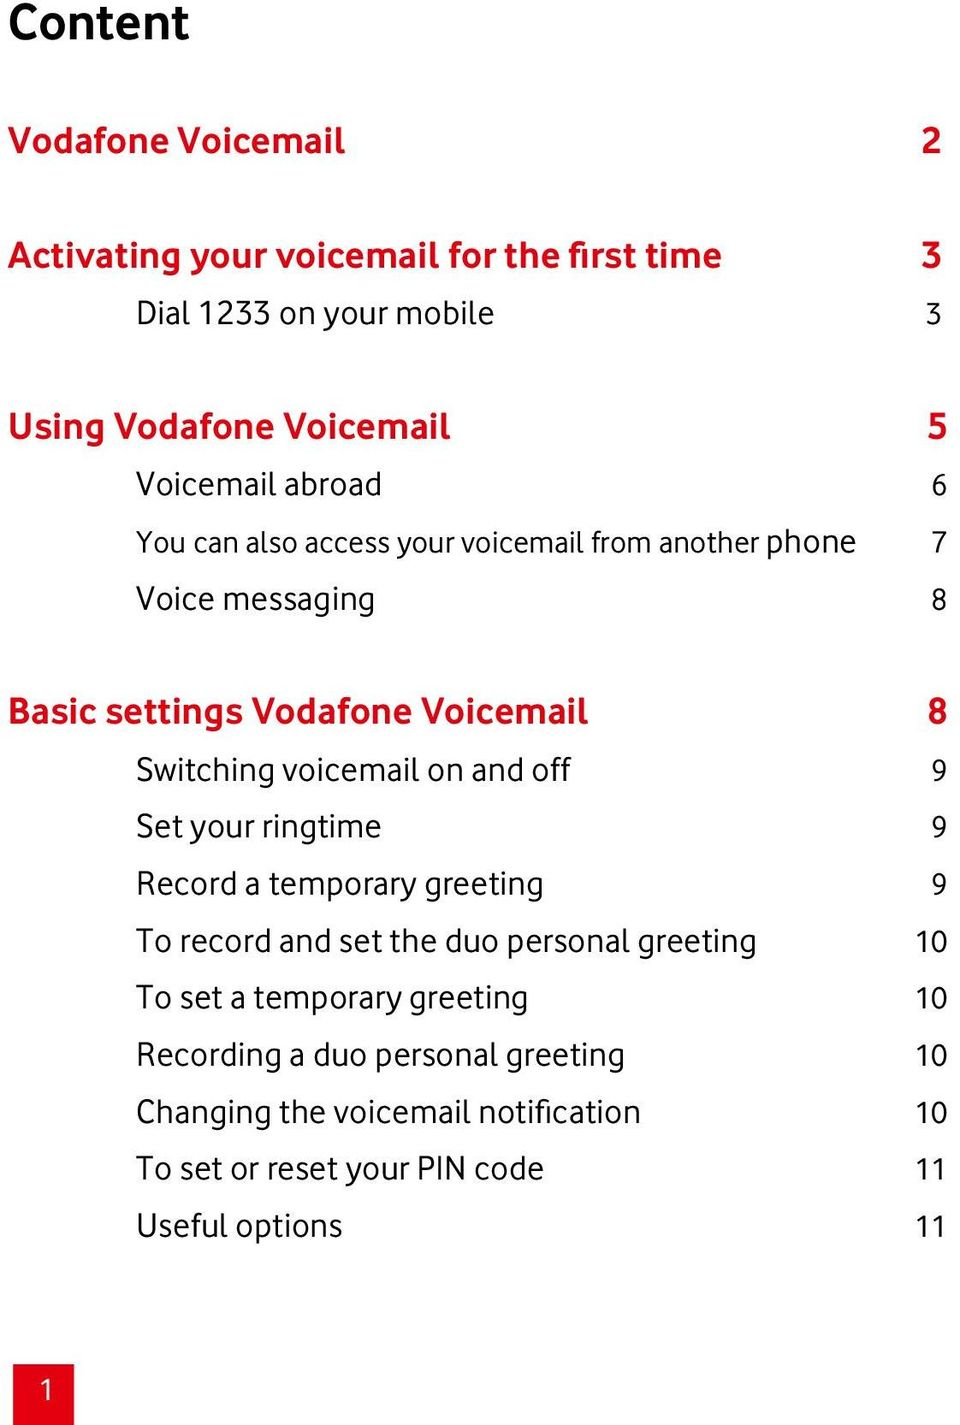 Vodafone Voic 2 Activating Your Voic For The First Time 3 Using